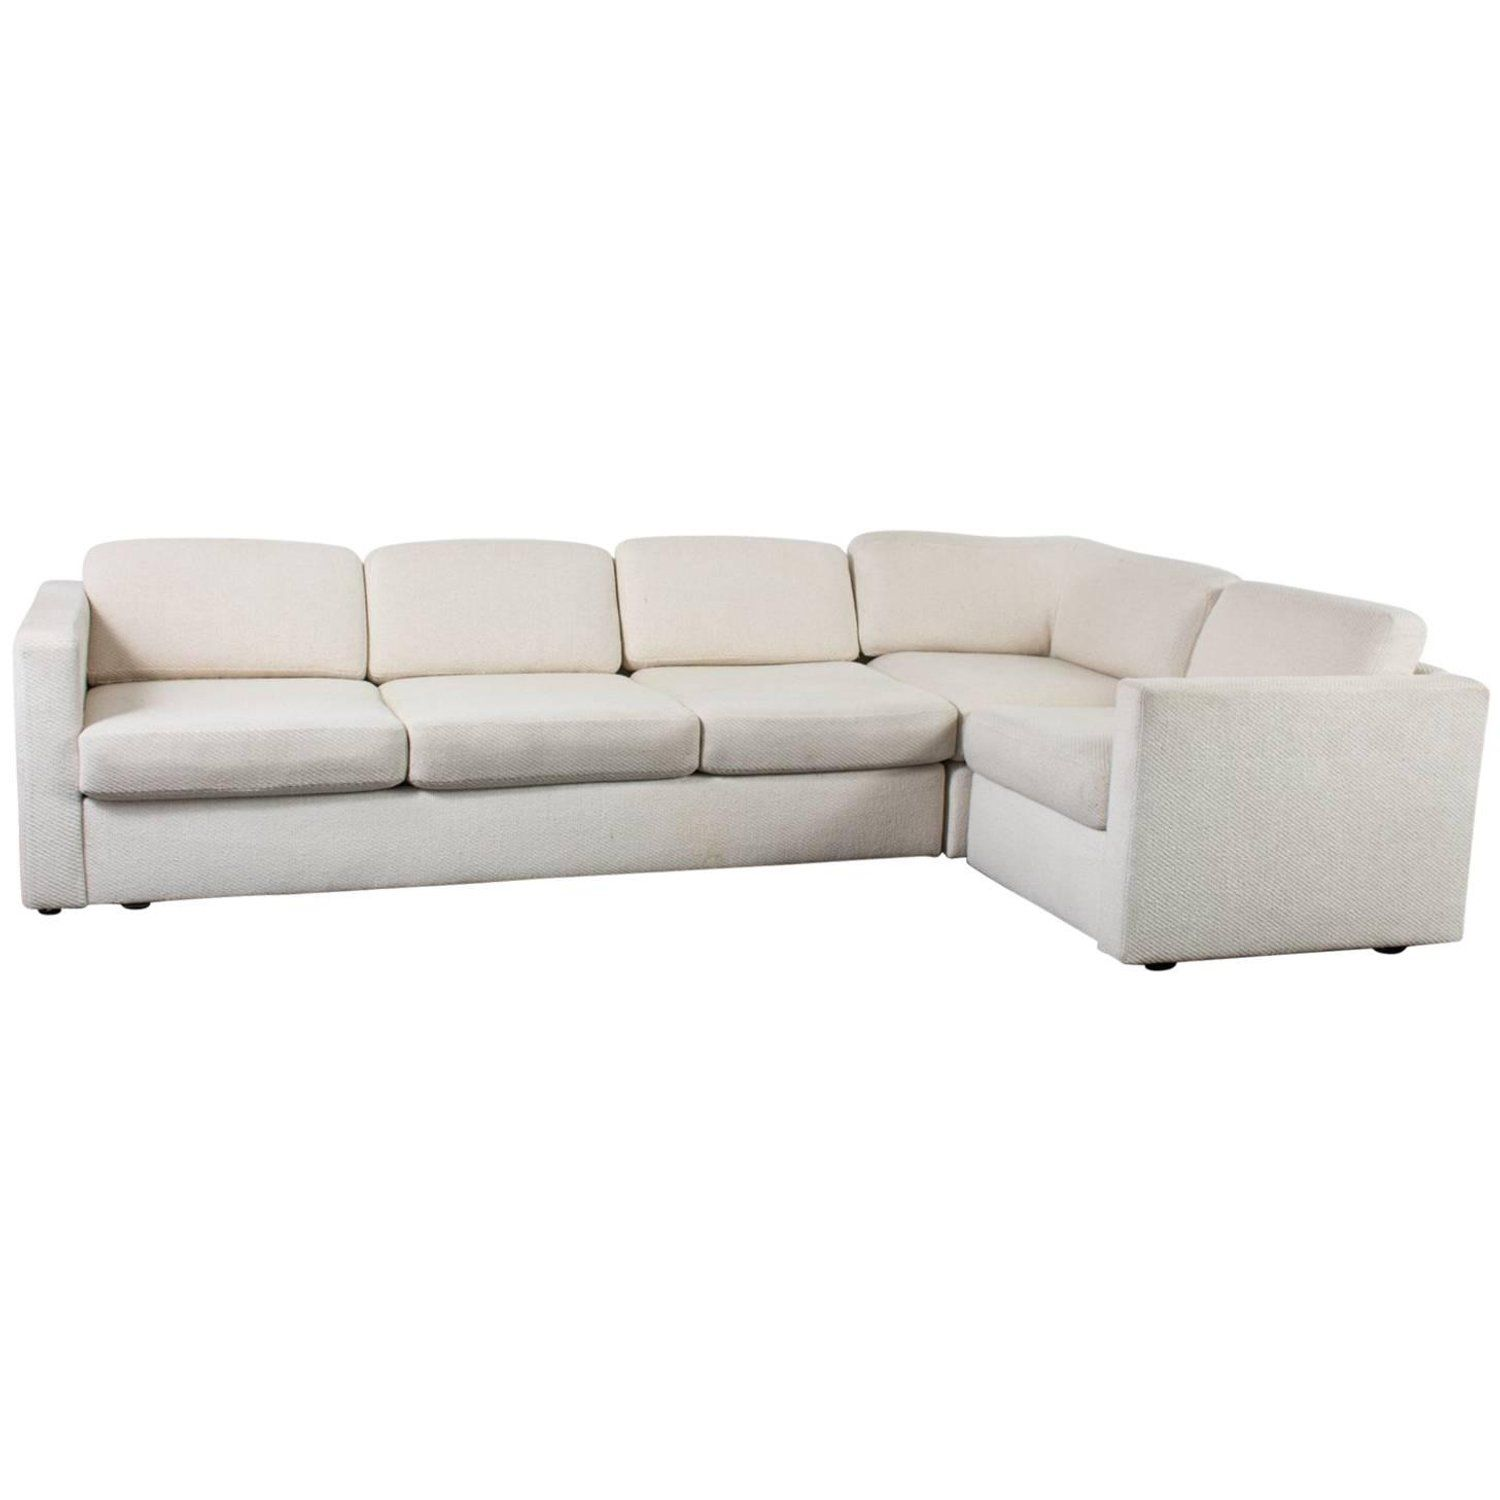 Cool Milo Baughman Sectional Sofa For Thayer Coggin My 1Stdibs Bralicious Painted Fabric Chair Ideas Braliciousco